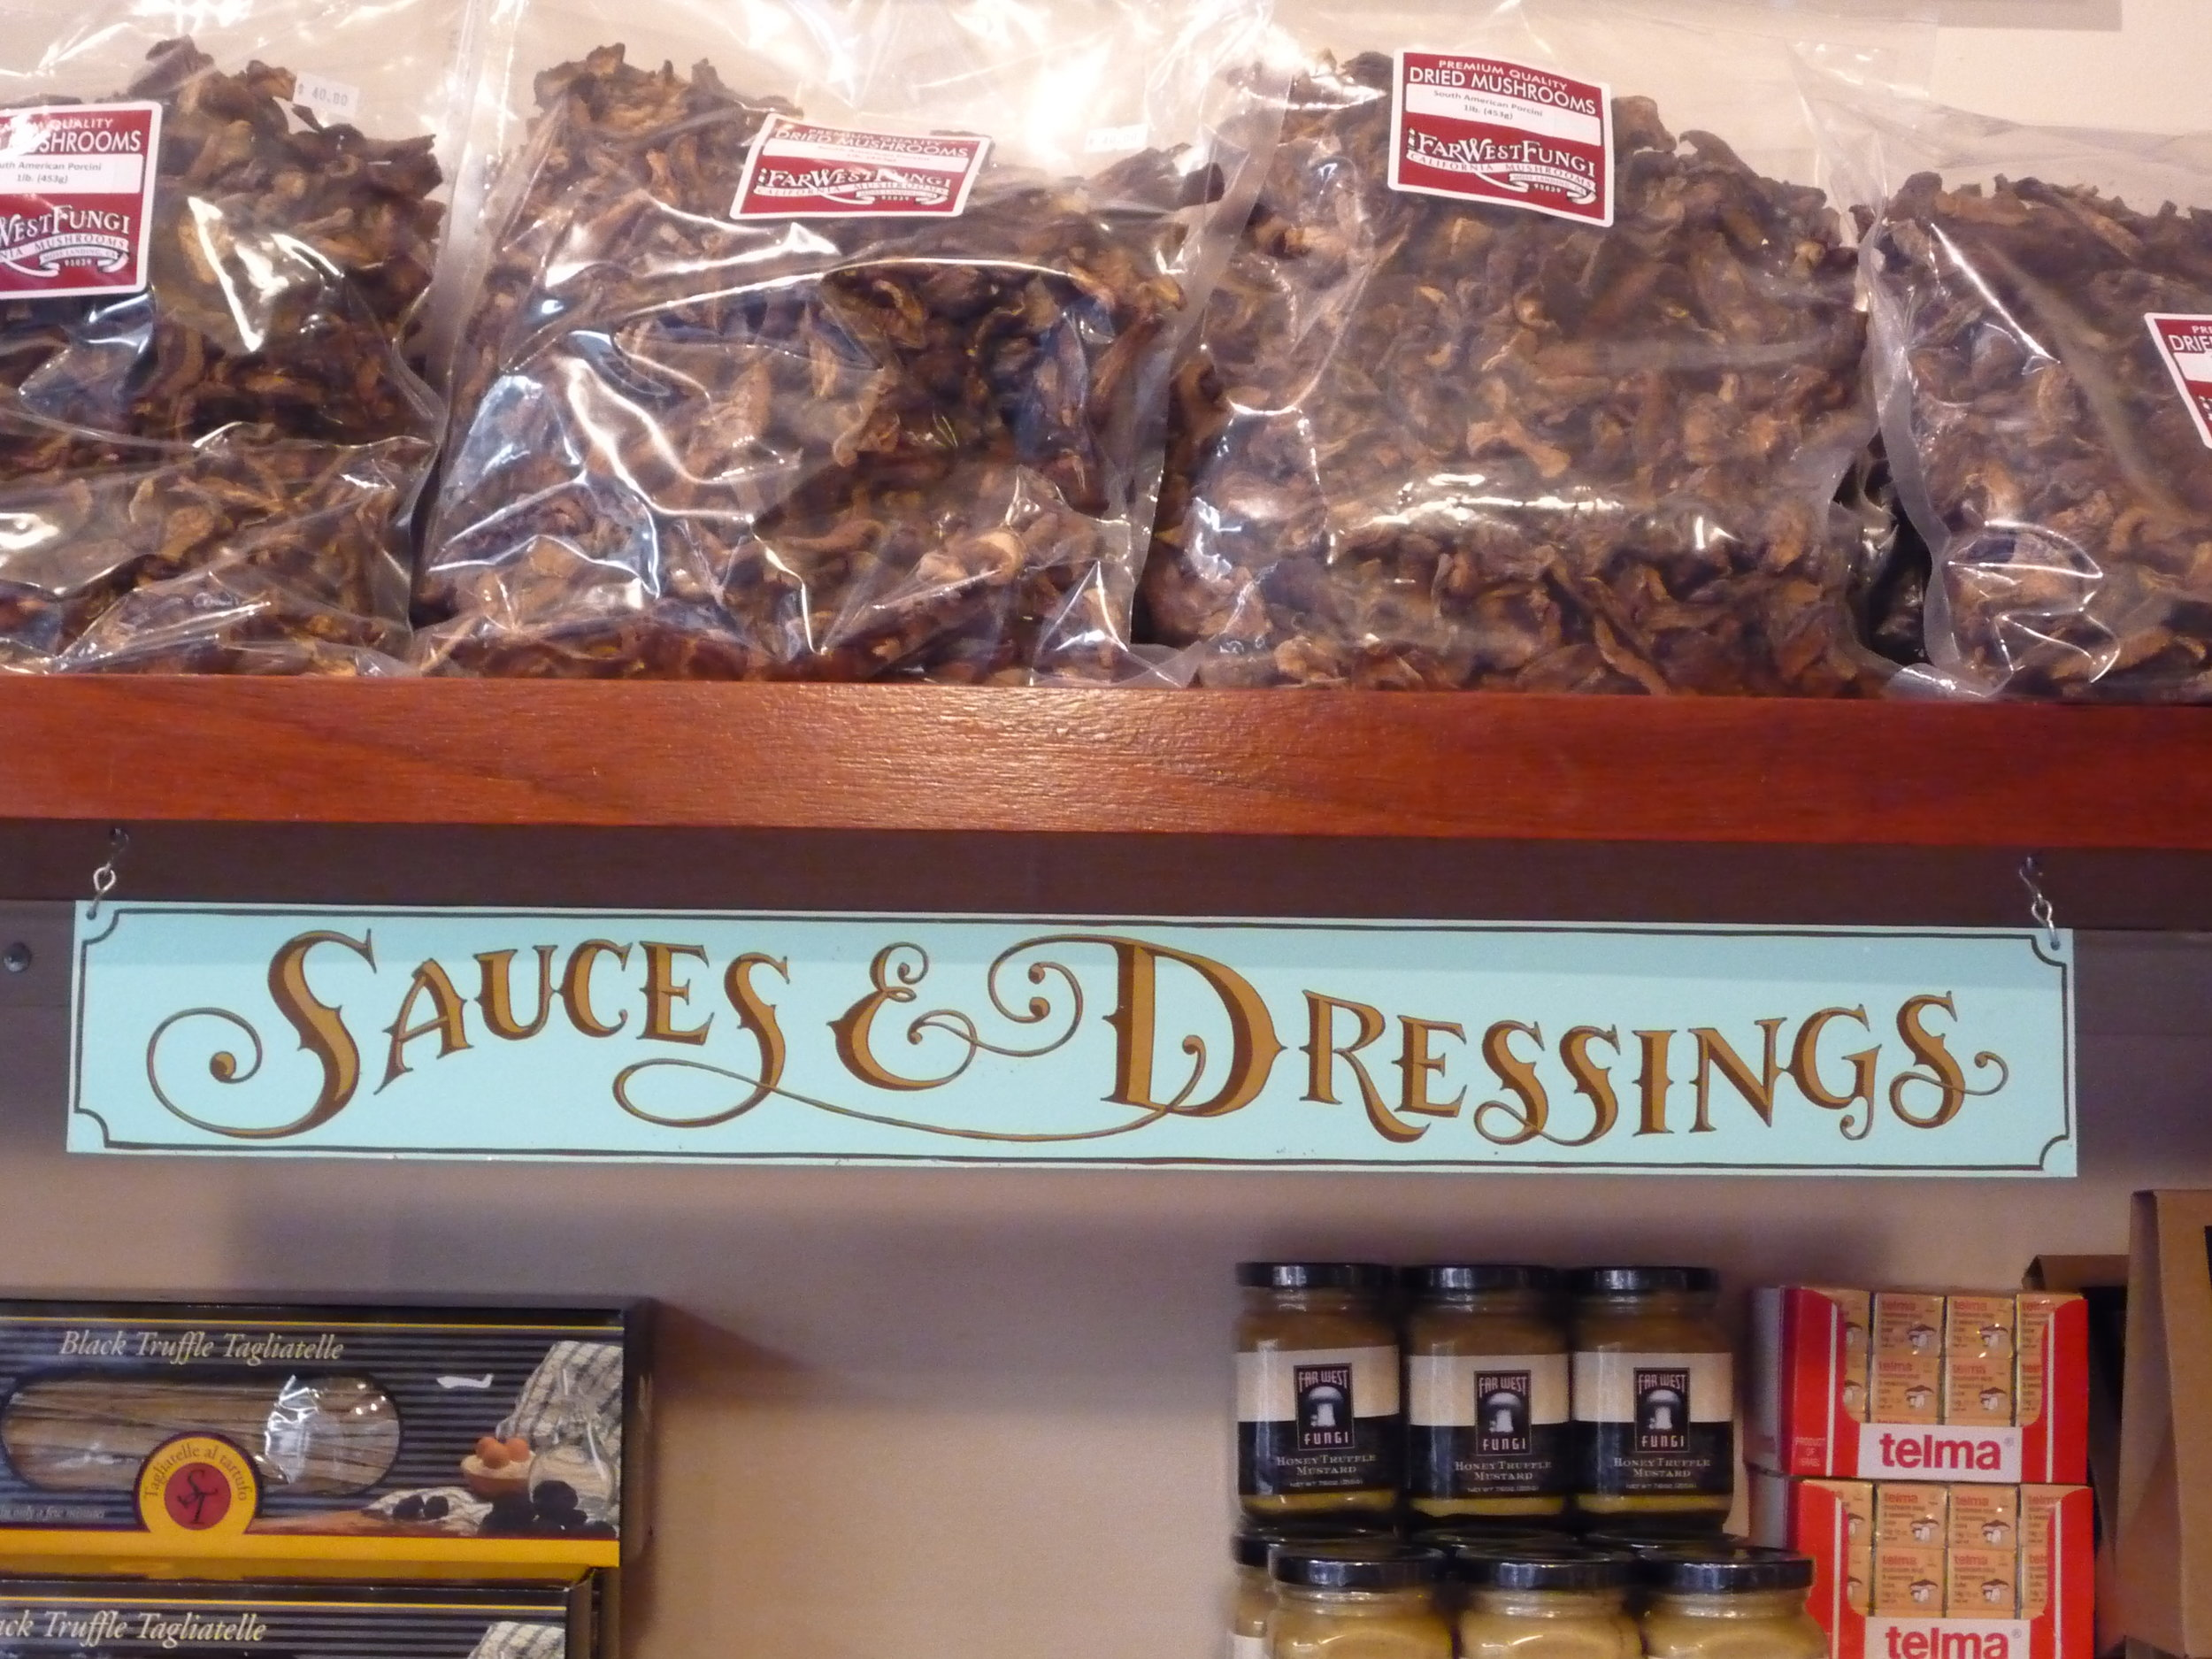 HAND-far-west-fungi-sauces--dressings-shelf-sign_4322988973_o.jpg